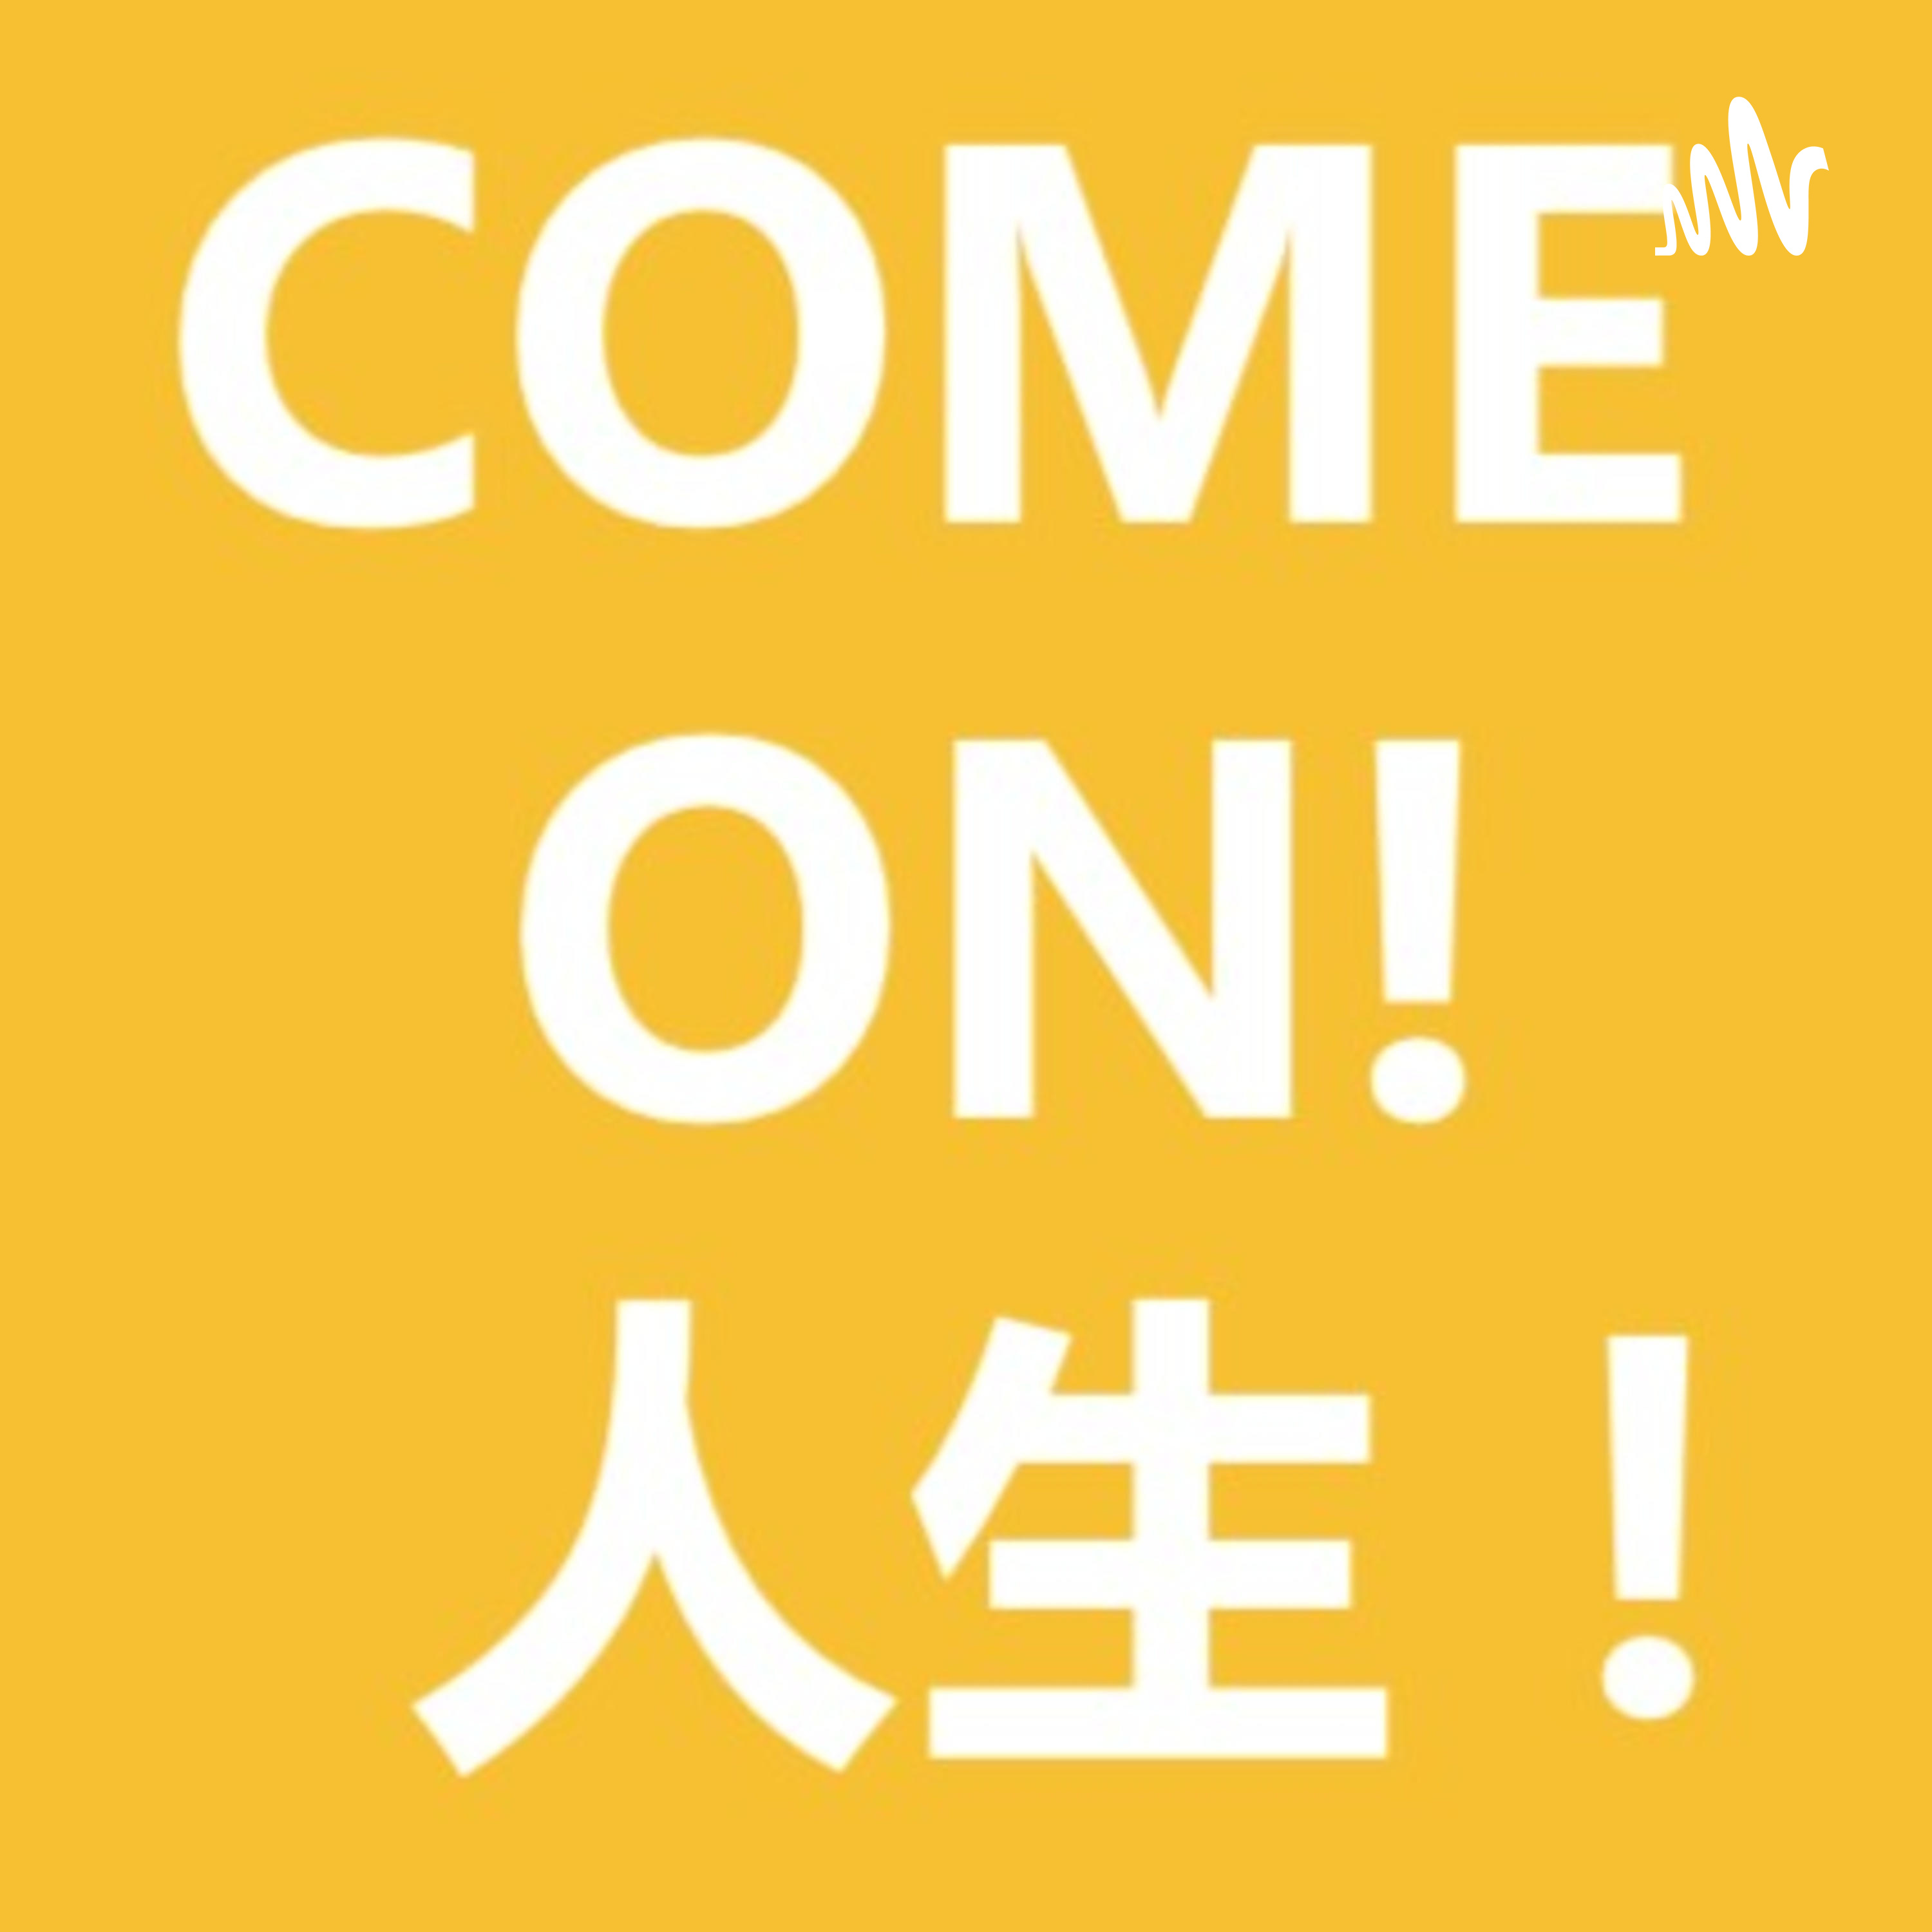 Come on! 人生!